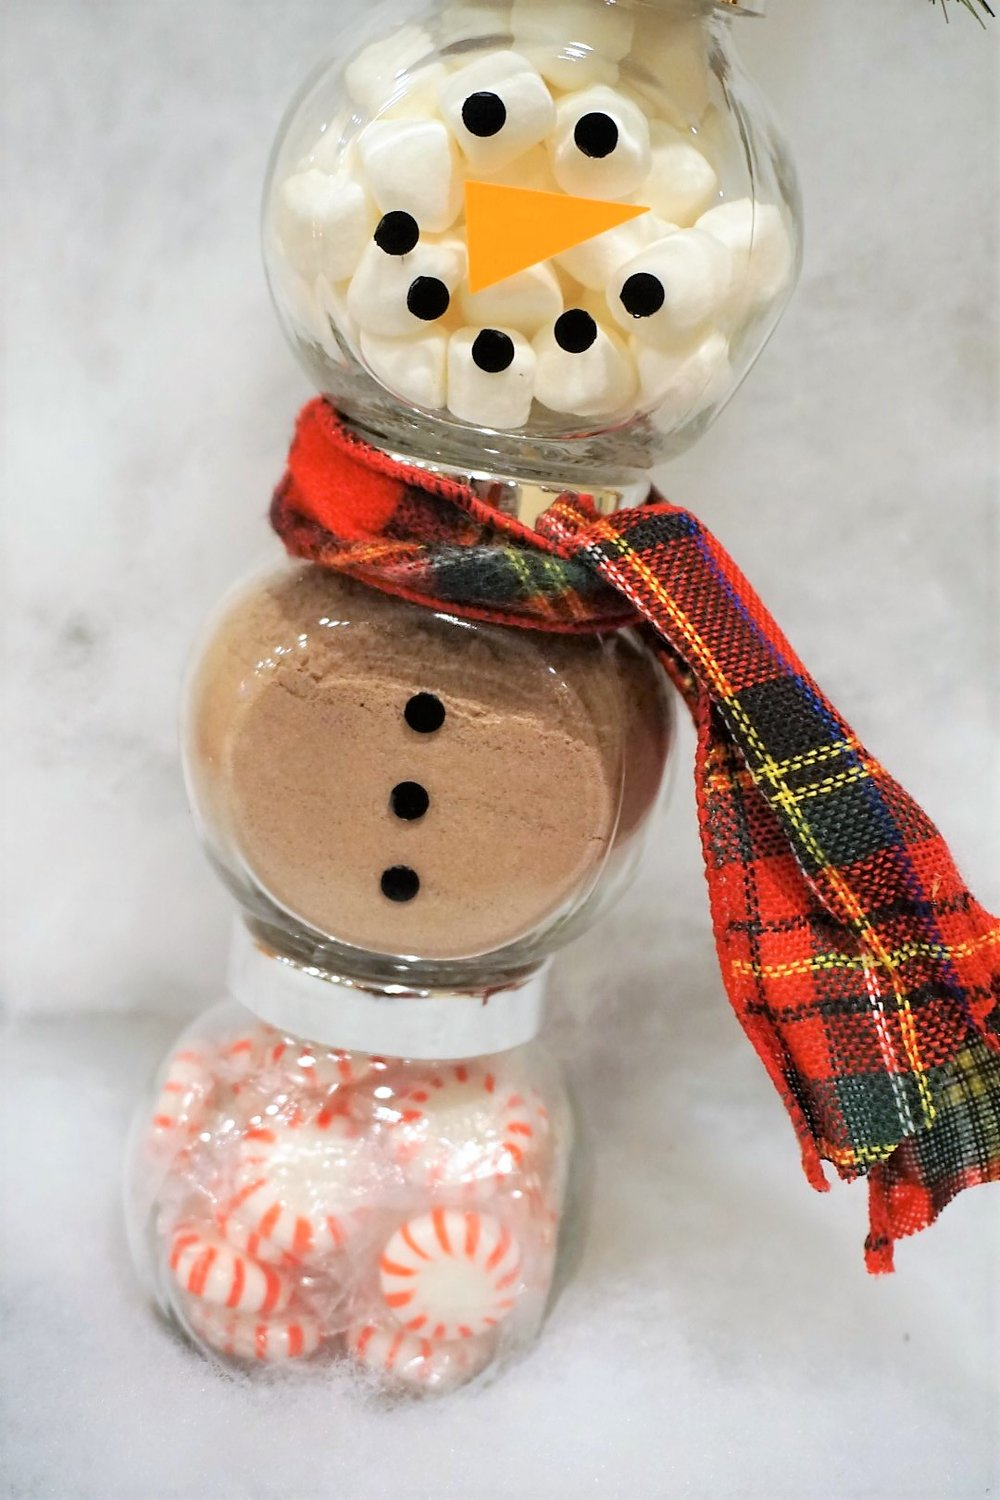 Make glass jars into a Snowman Cocoa Kit by cutting out a vinyl face and buttons by hand or using a Cricut.